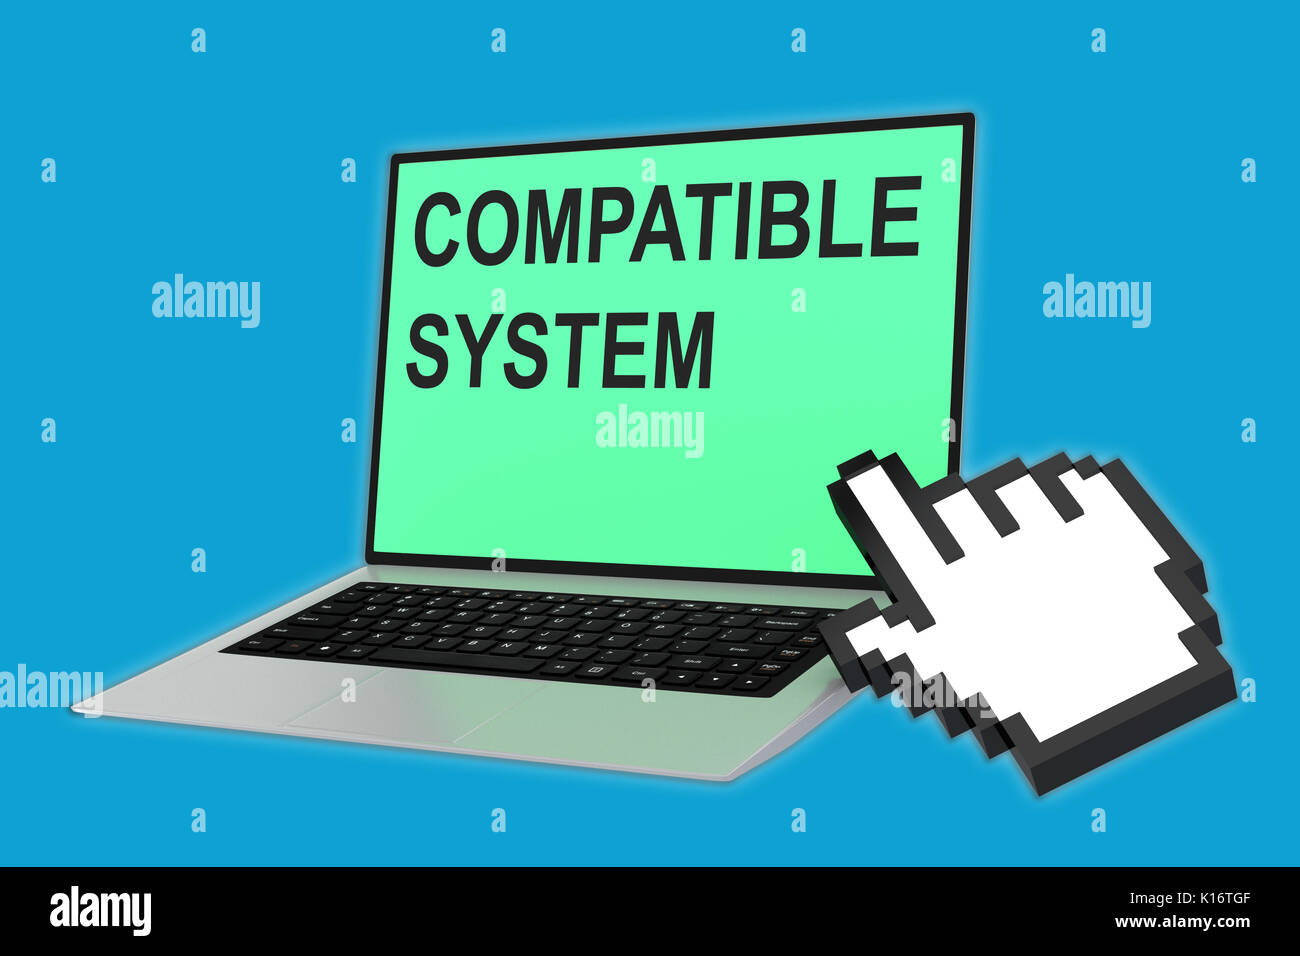 3D illustration of 'COMPATIBLE SYSTEM' script with pointing hand icon pointing at the laptop screen - Stock Image